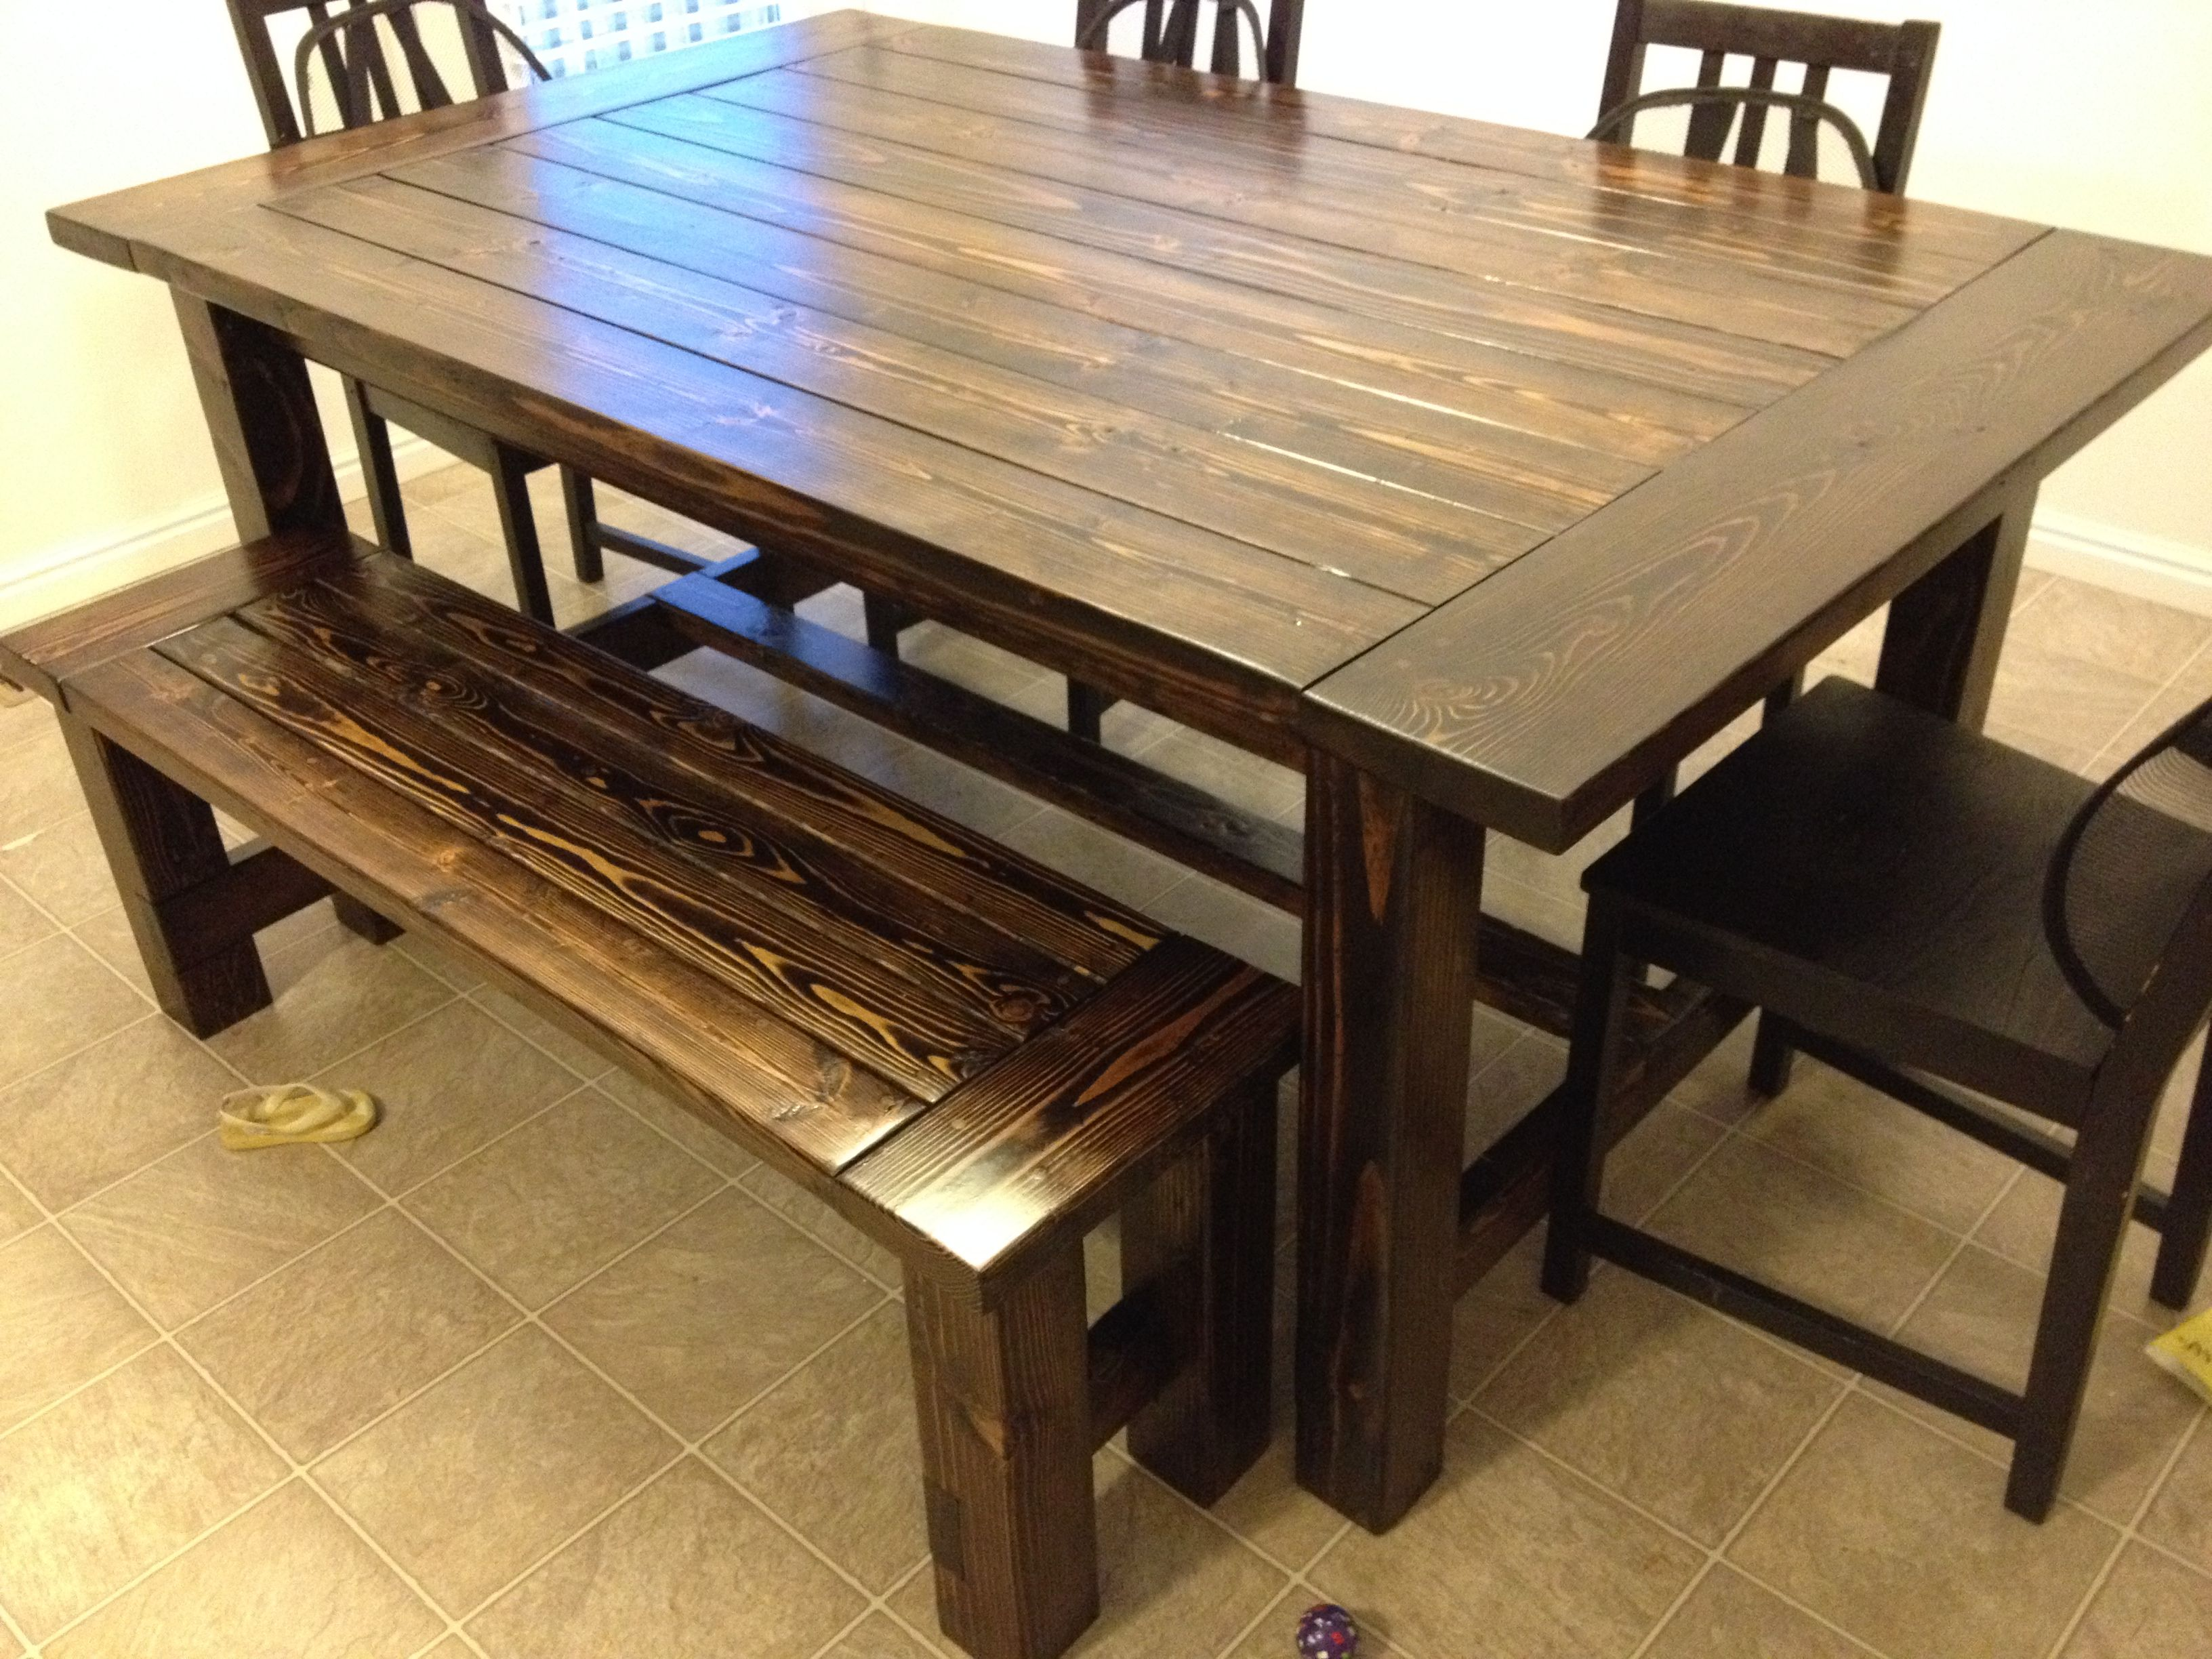 Farmhouse table and bench do it yourself home projects from ana farmhouse table and bench do it yourself home projects from ana white solutioingenieria Choice Image